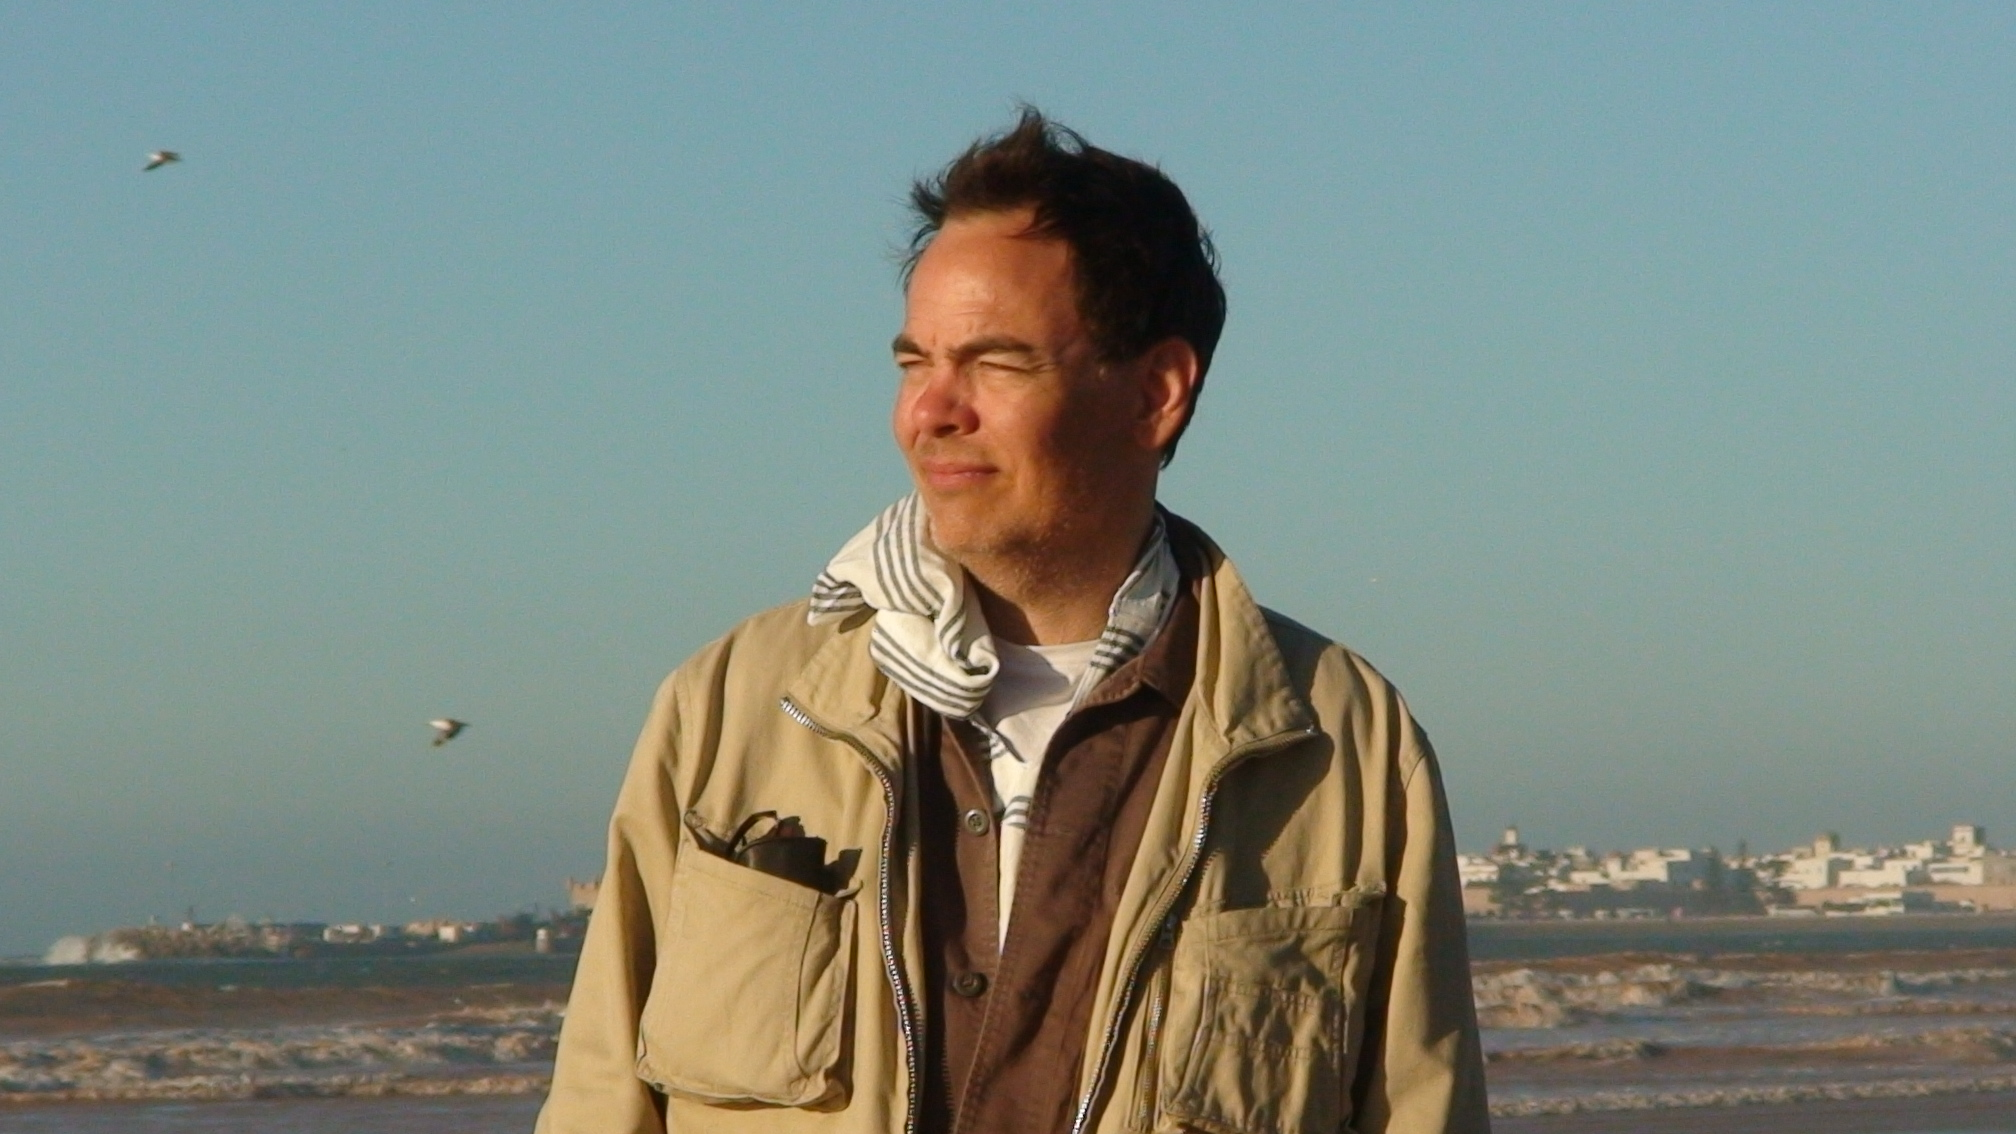 Max Keiser Establishes Own Alternative Currency